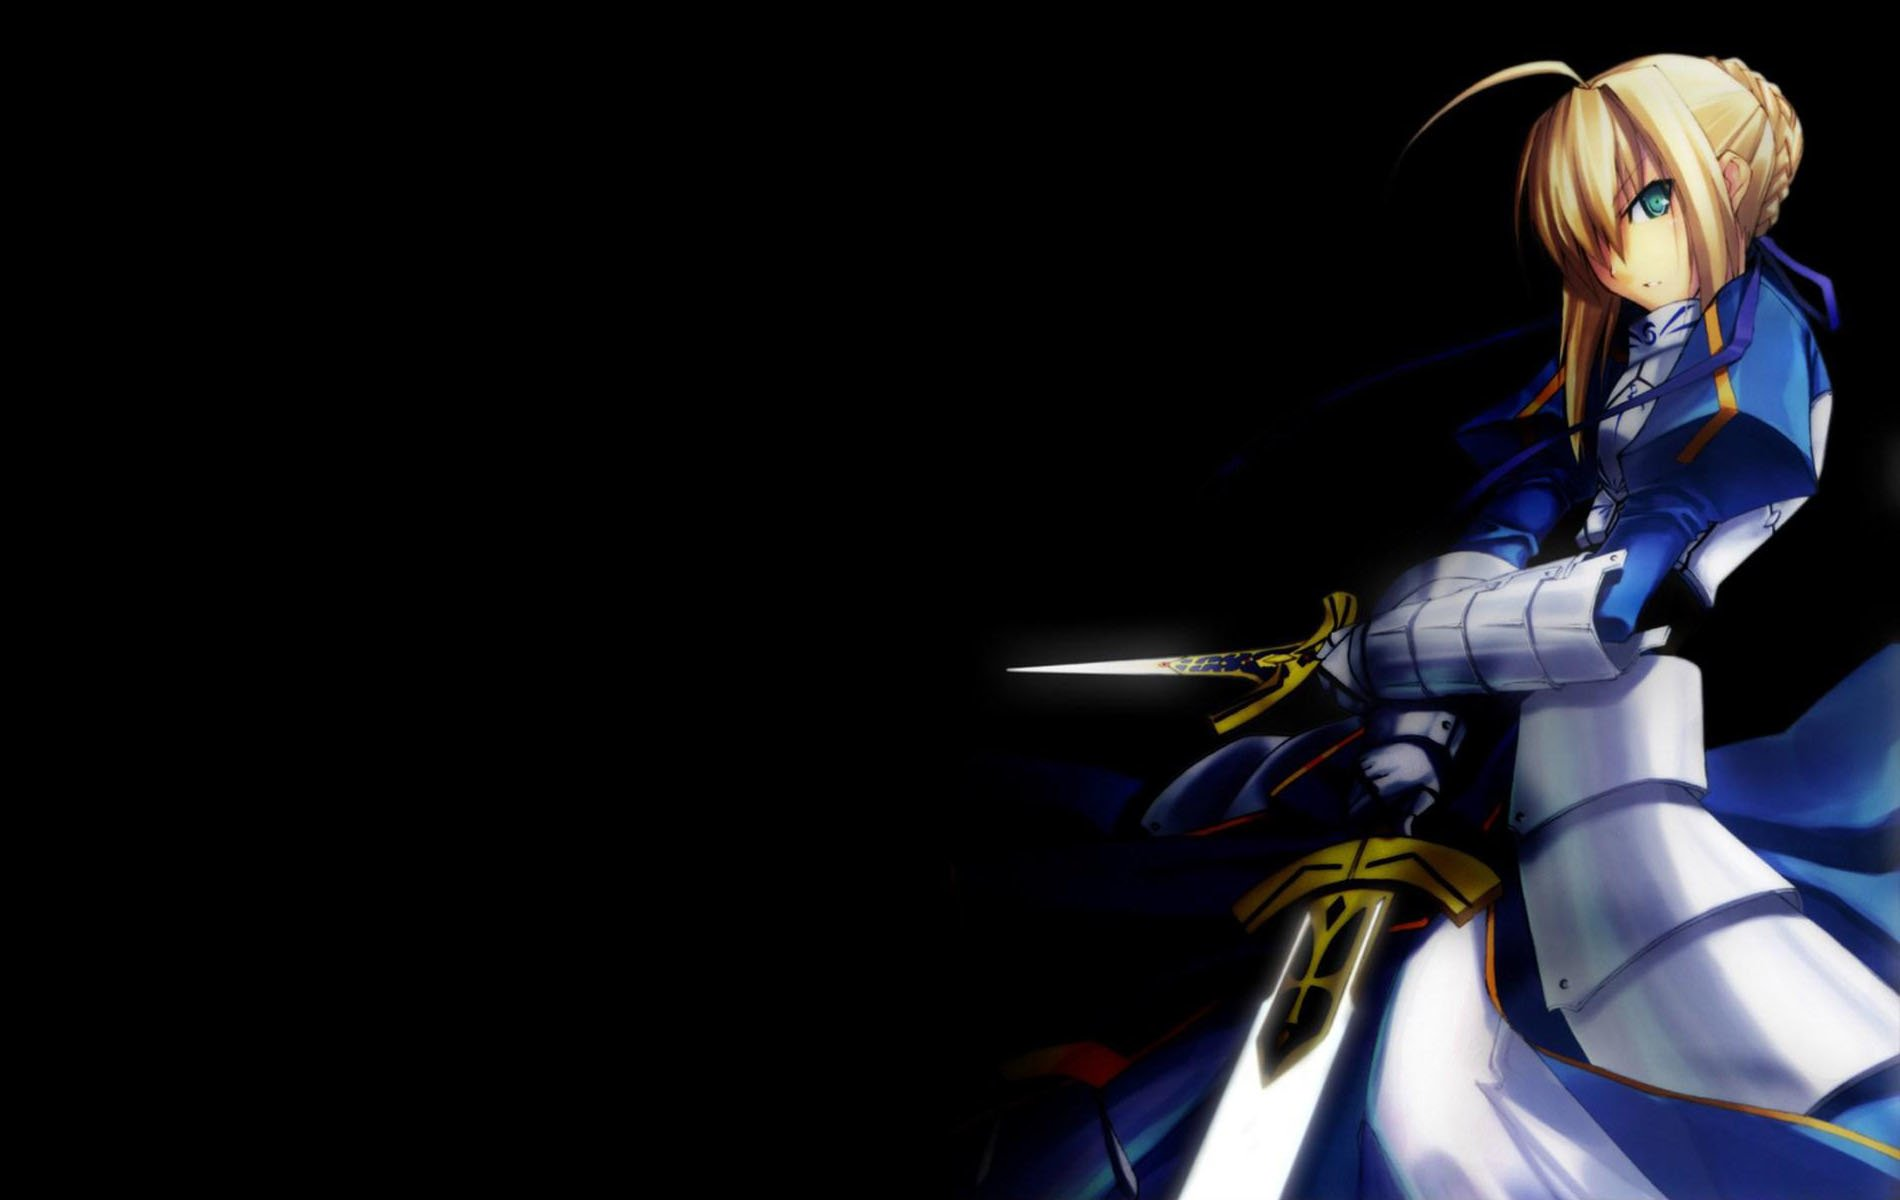 Anime - Fate/Stay Night  Saber (Fate Series) Wallpaper